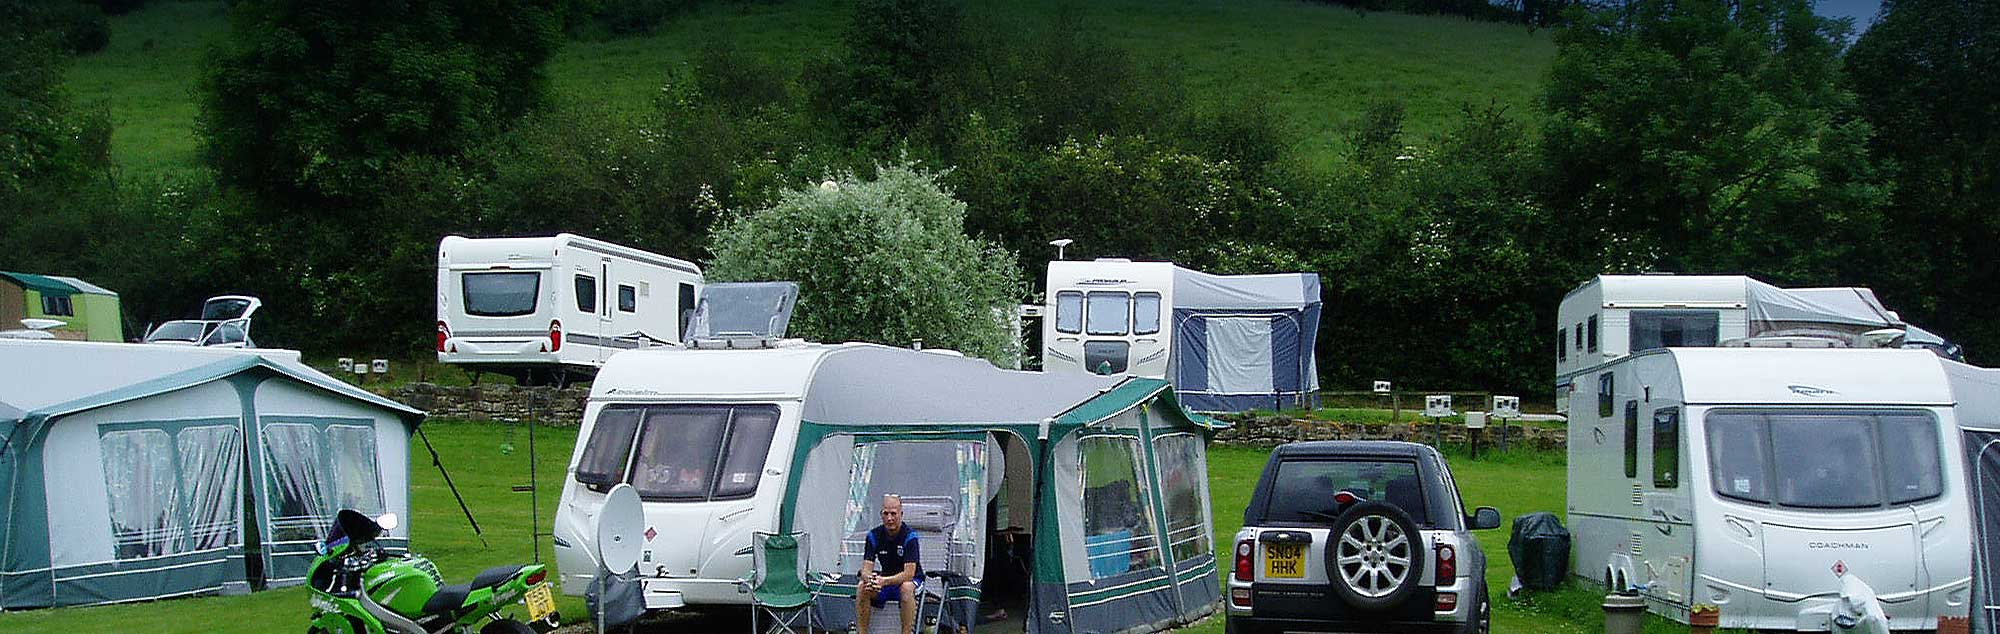 Camping and touring in the North Yorkshire Moors